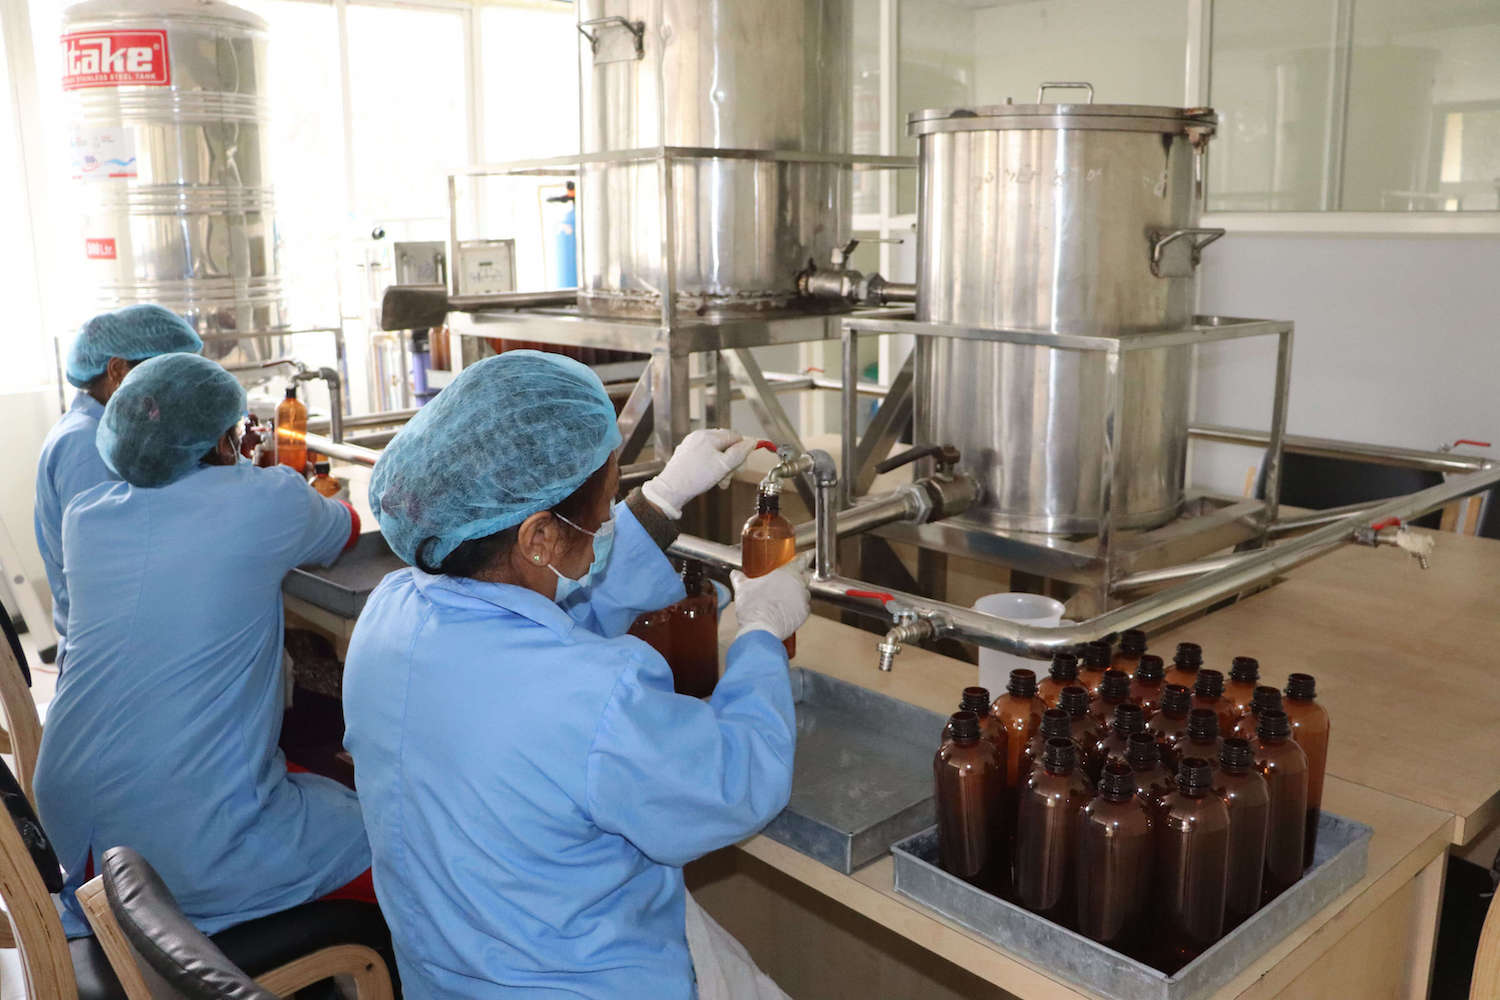 Staff at the Herbs Production & Processing Co. Ltd. in Jadibuti work on manufacturing and packaging sanitiser for  the market.